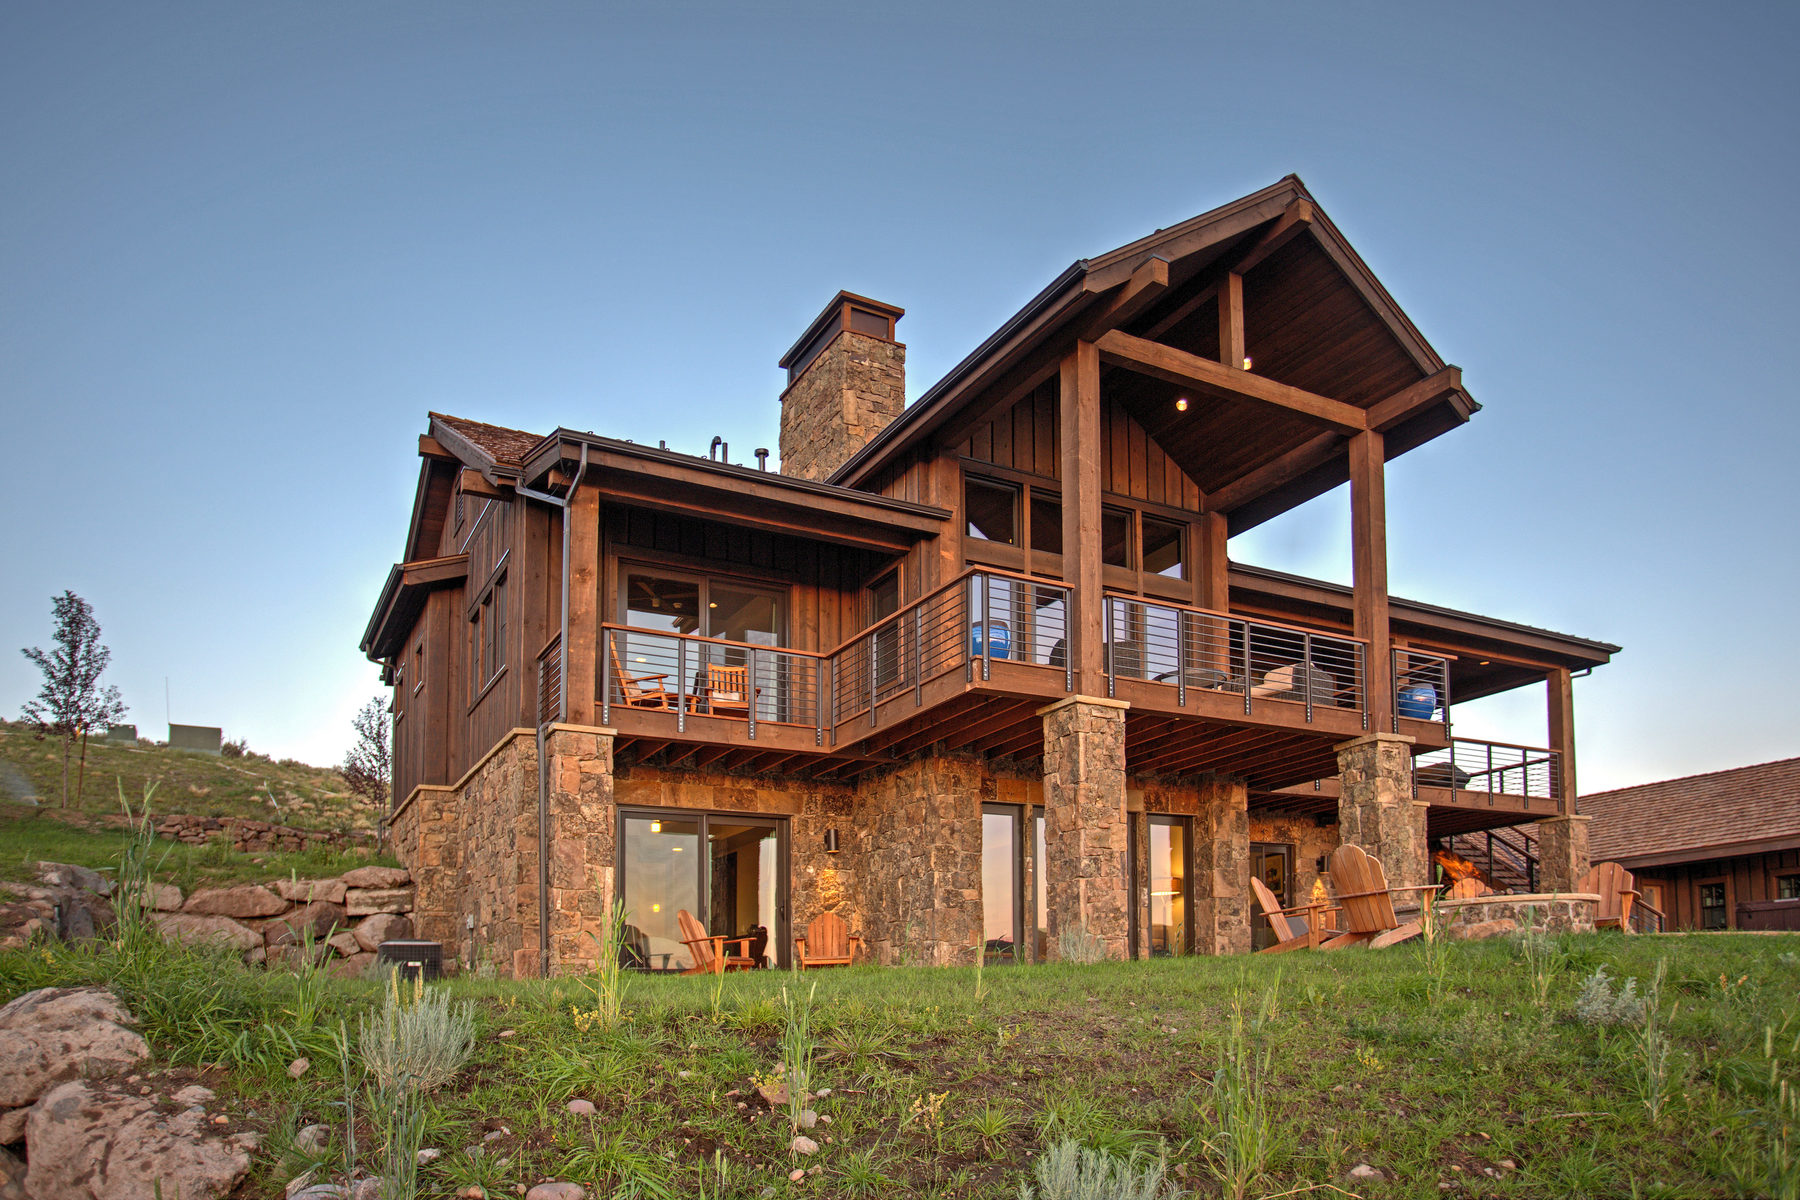 Single Family Home for Sale at Juniper Cabin with Spectacular Views 7049 N Rees Jones Way #171 Heber City, Utah, 84032 United States